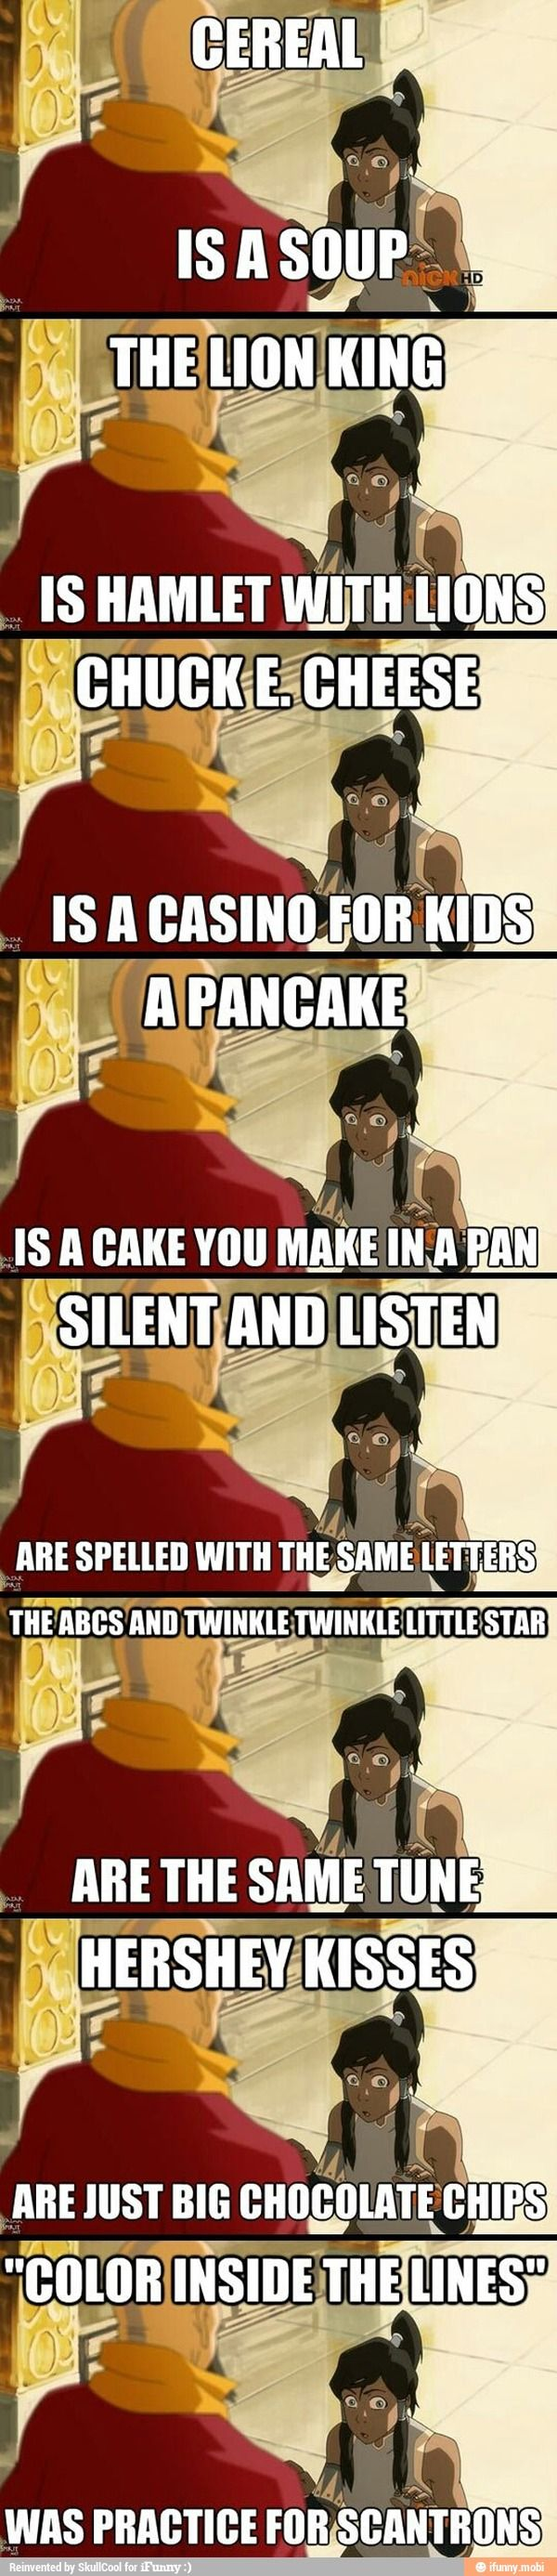 Truth Revealed Ifunny Go Korra Really Funny Memes Funny Pictures Stupid Funny Memes